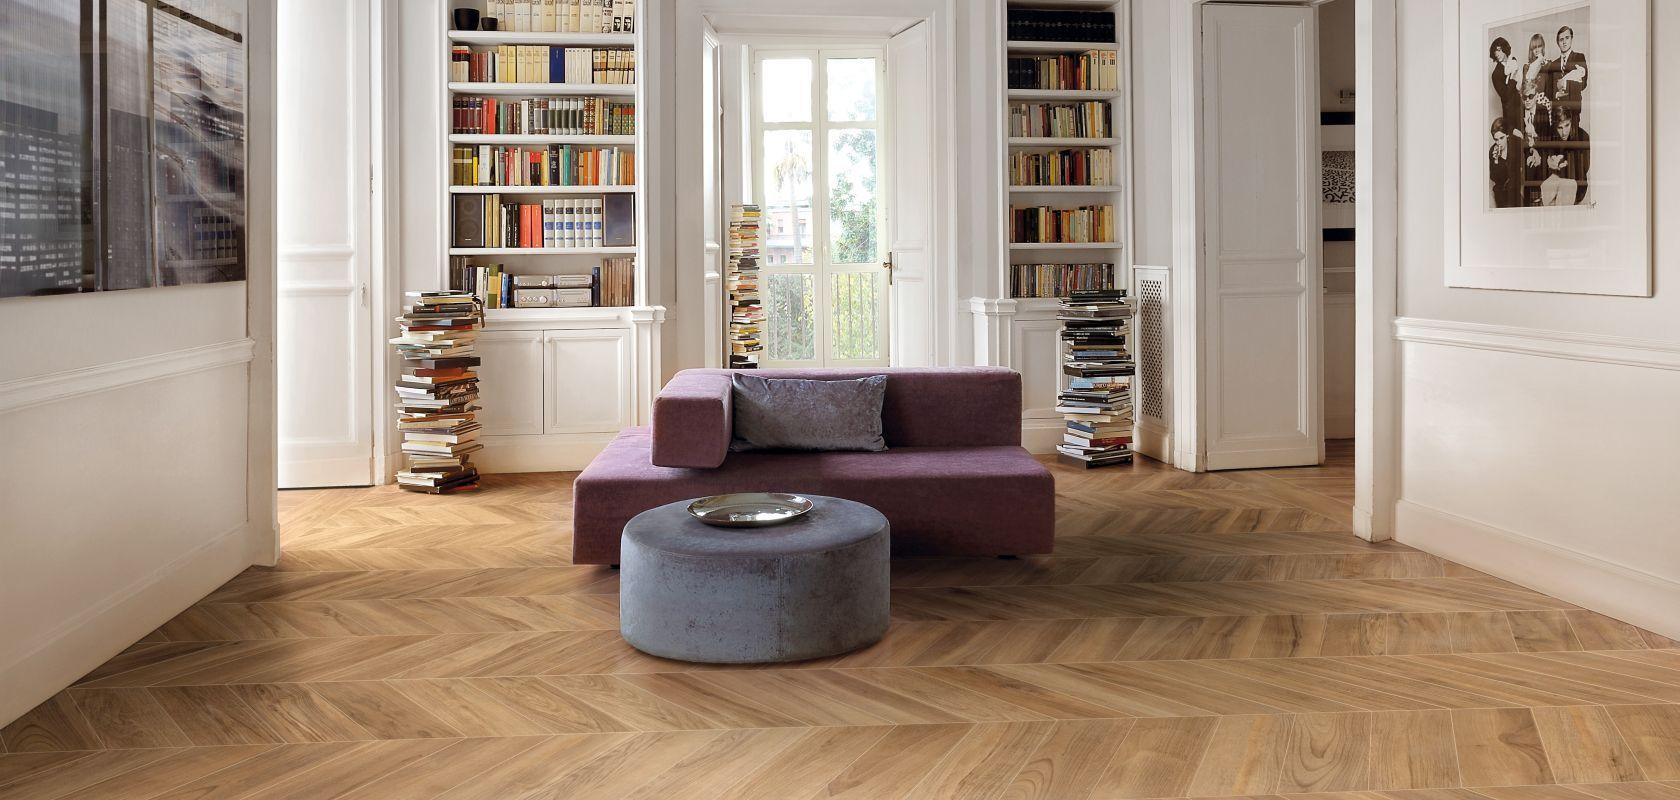 carrelage imitation parquet neutre private room porto venere. Black Bedroom Furniture Sets. Home Design Ideas